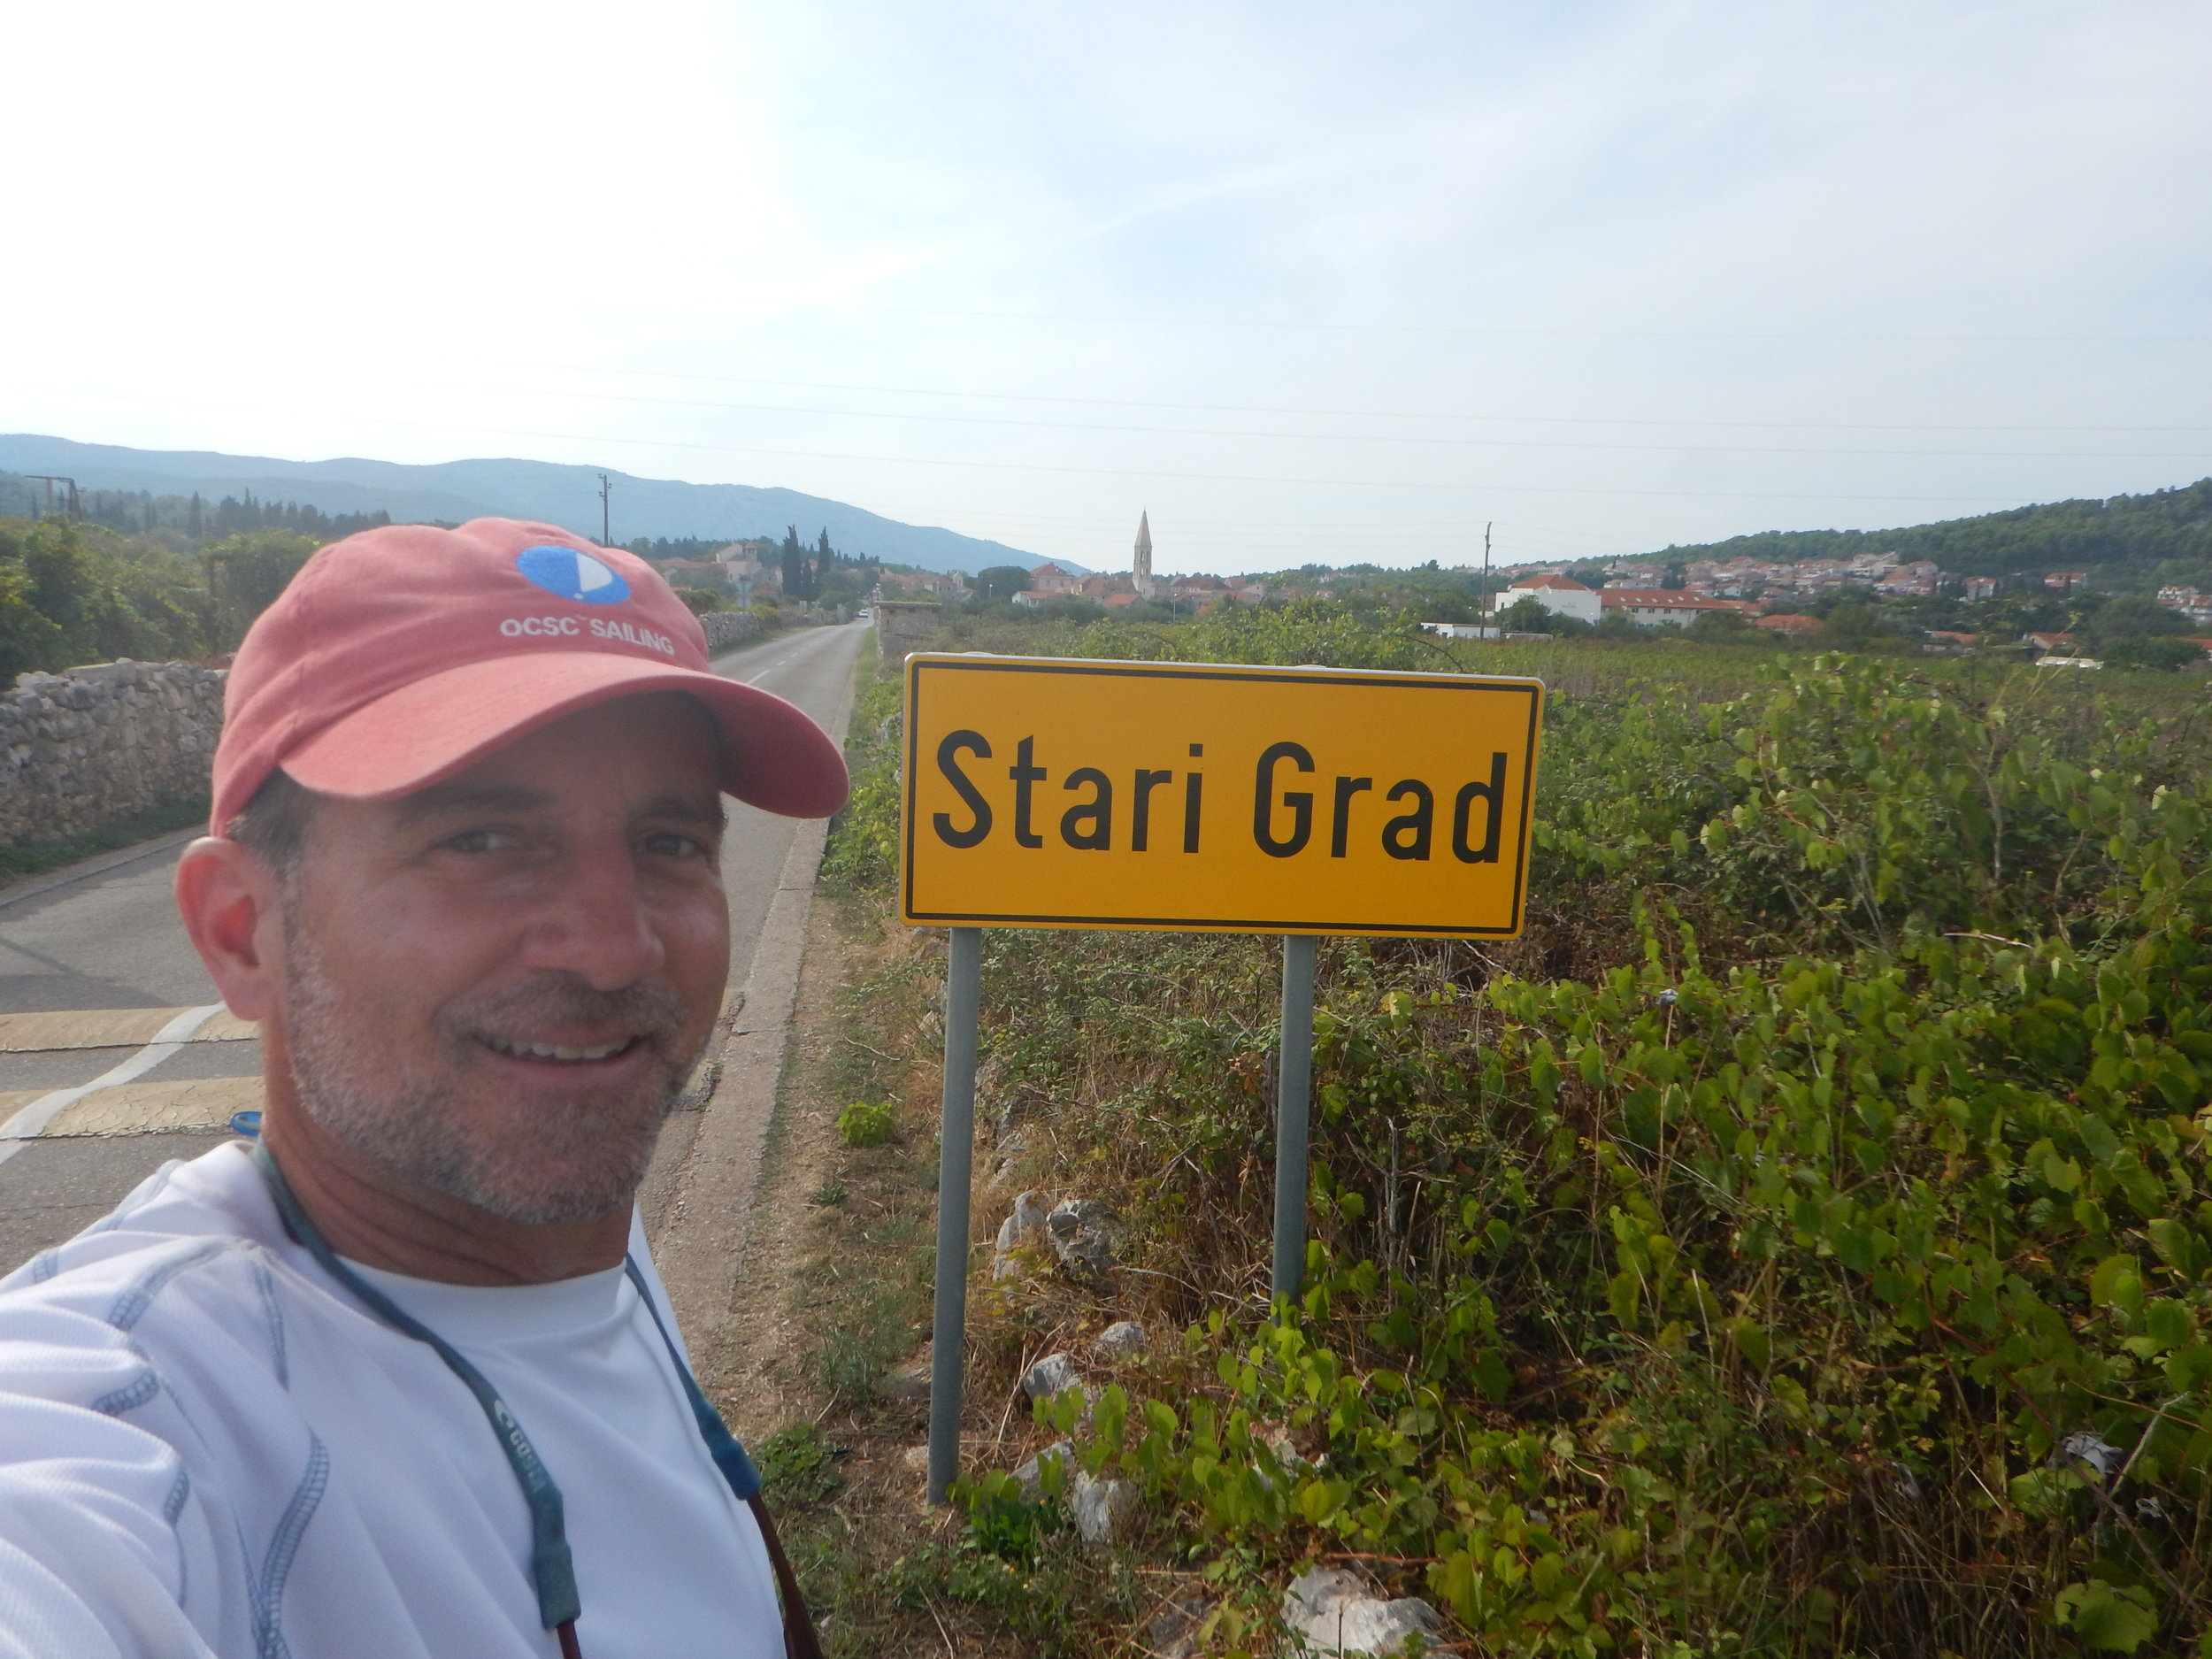 We visited Starigrad on the island of Hvar. I had a great hike through the vineyards.